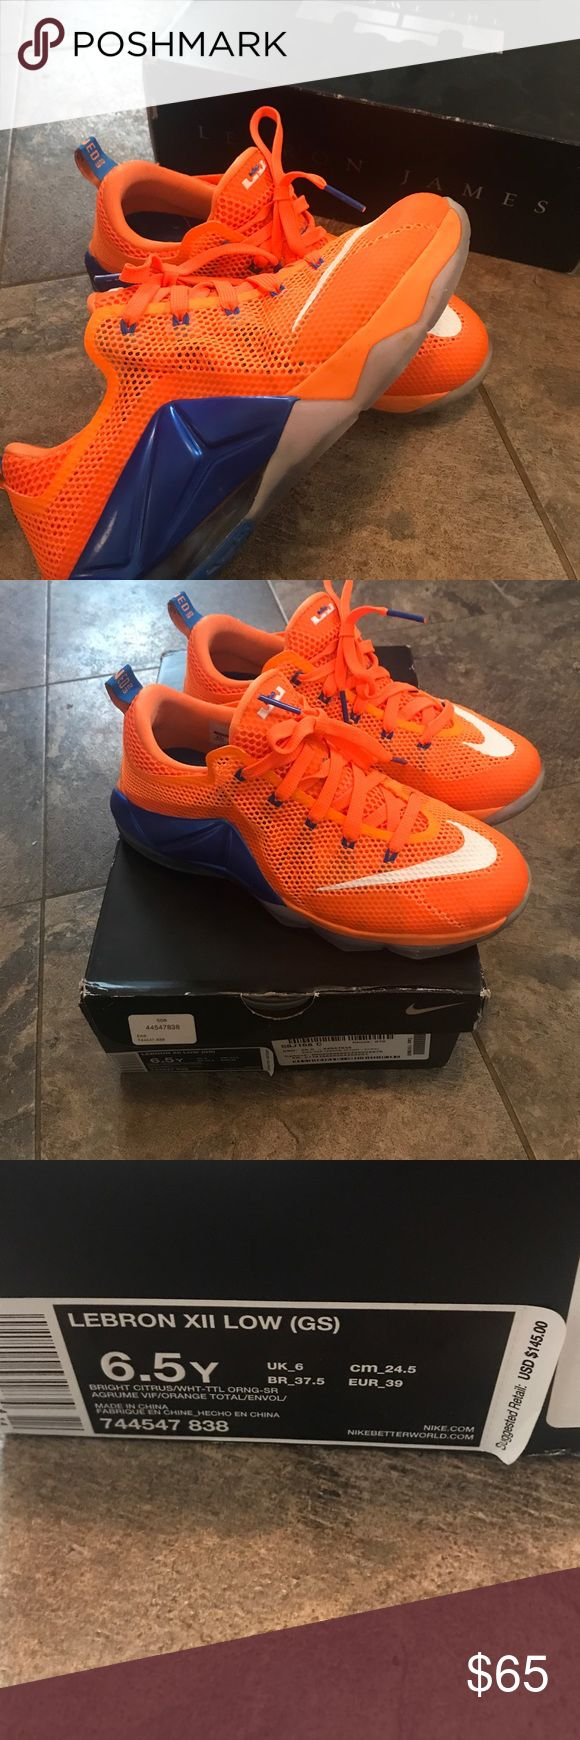 Lebron XII Low - Denver Bronco Colors Excellent condition! Only worn a handful of times Nike Shoes Sneakers